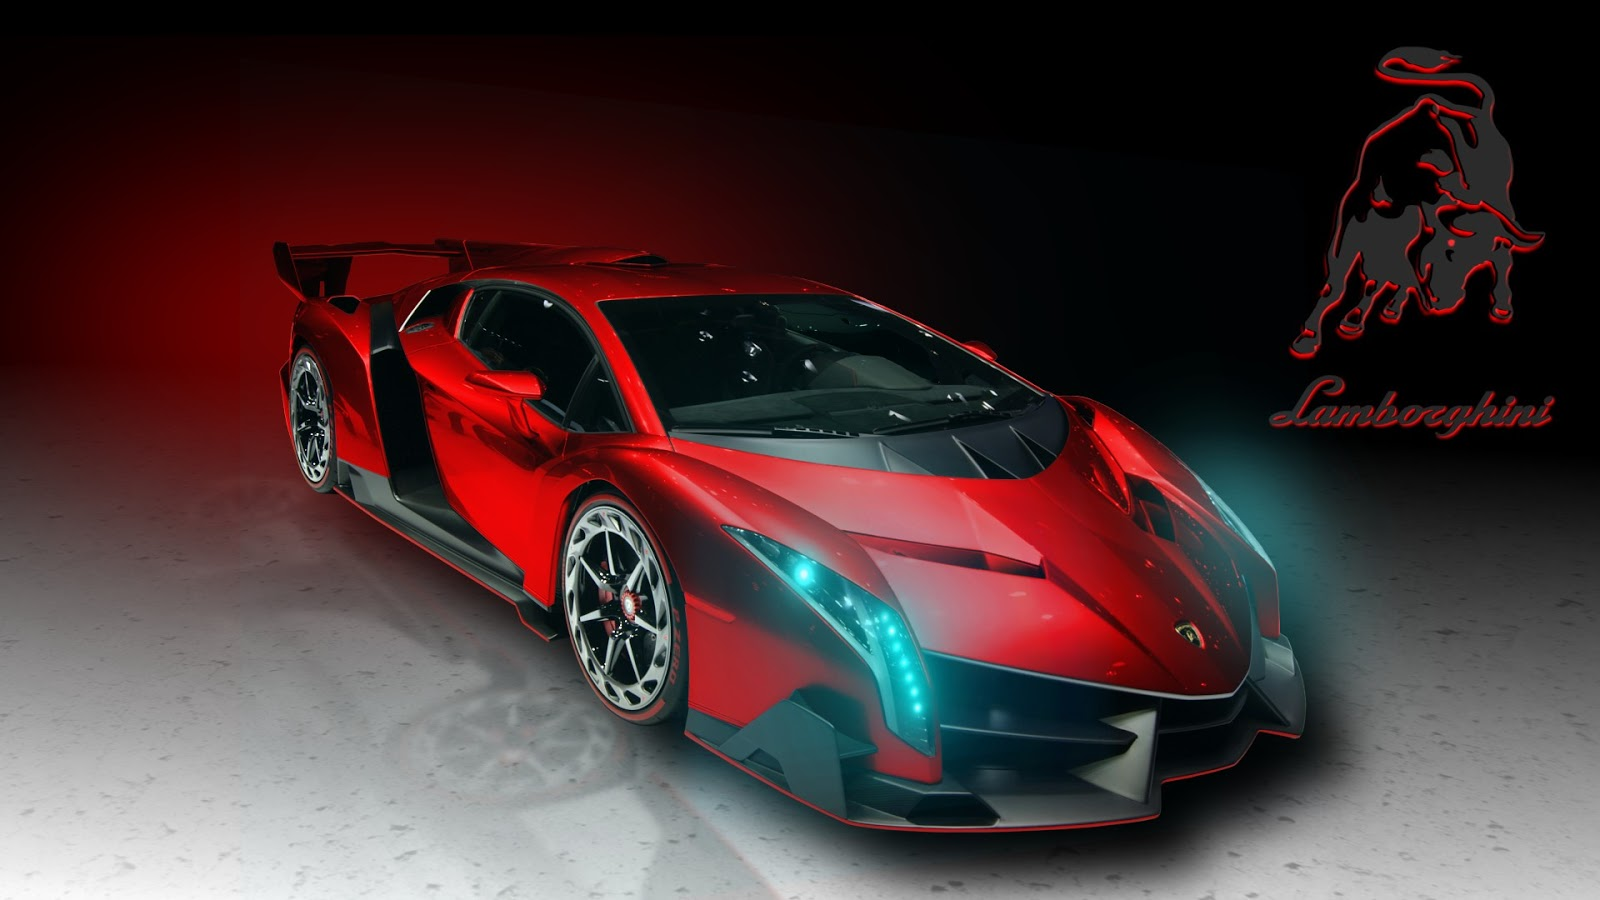 daily amazing fun car wallpapers lamborghini in red. Black Bedroom Furniture Sets. Home Design Ideas